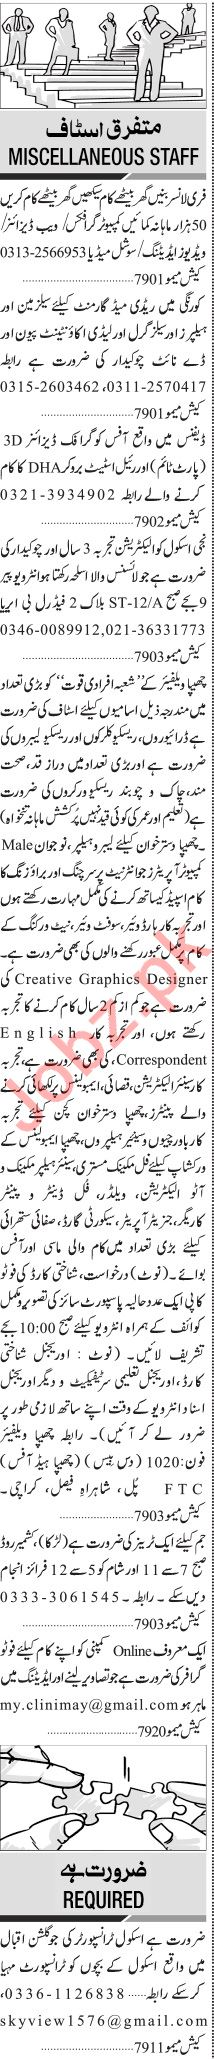 Jang Sunday Classified Ads 10 Jan 2021 for Multiple Staff